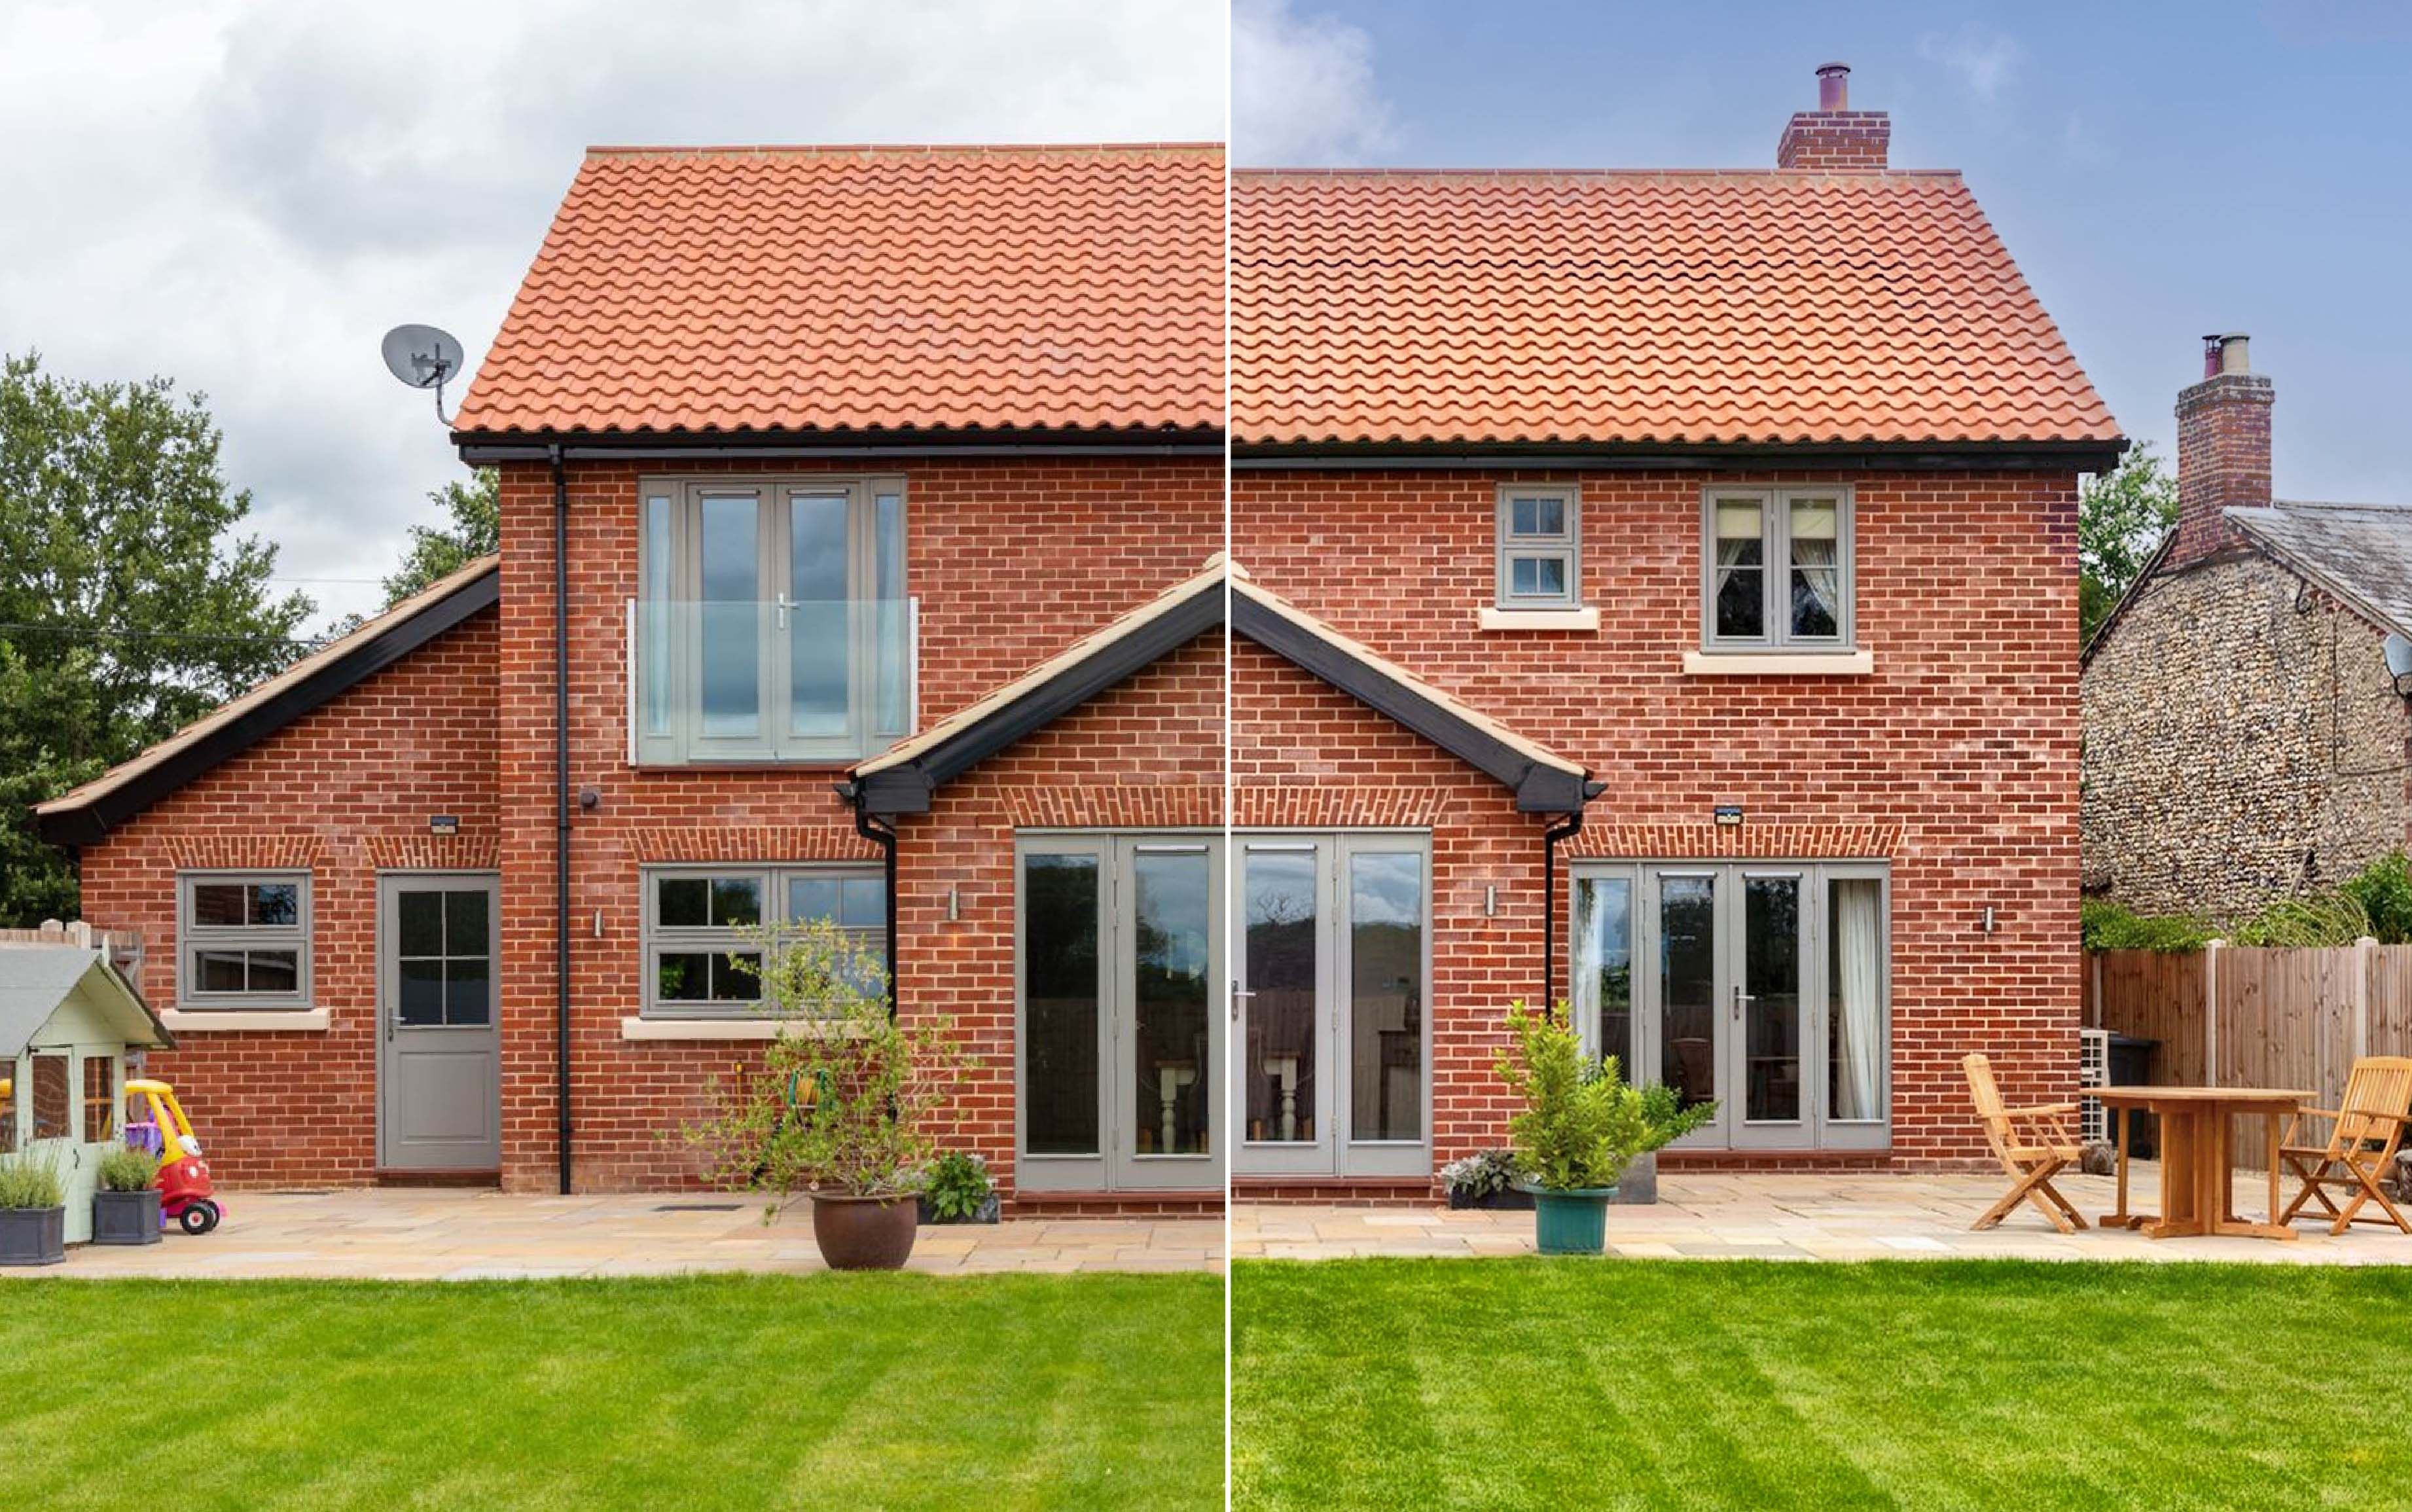 How to correct perspective in a real estate image with photo editing software